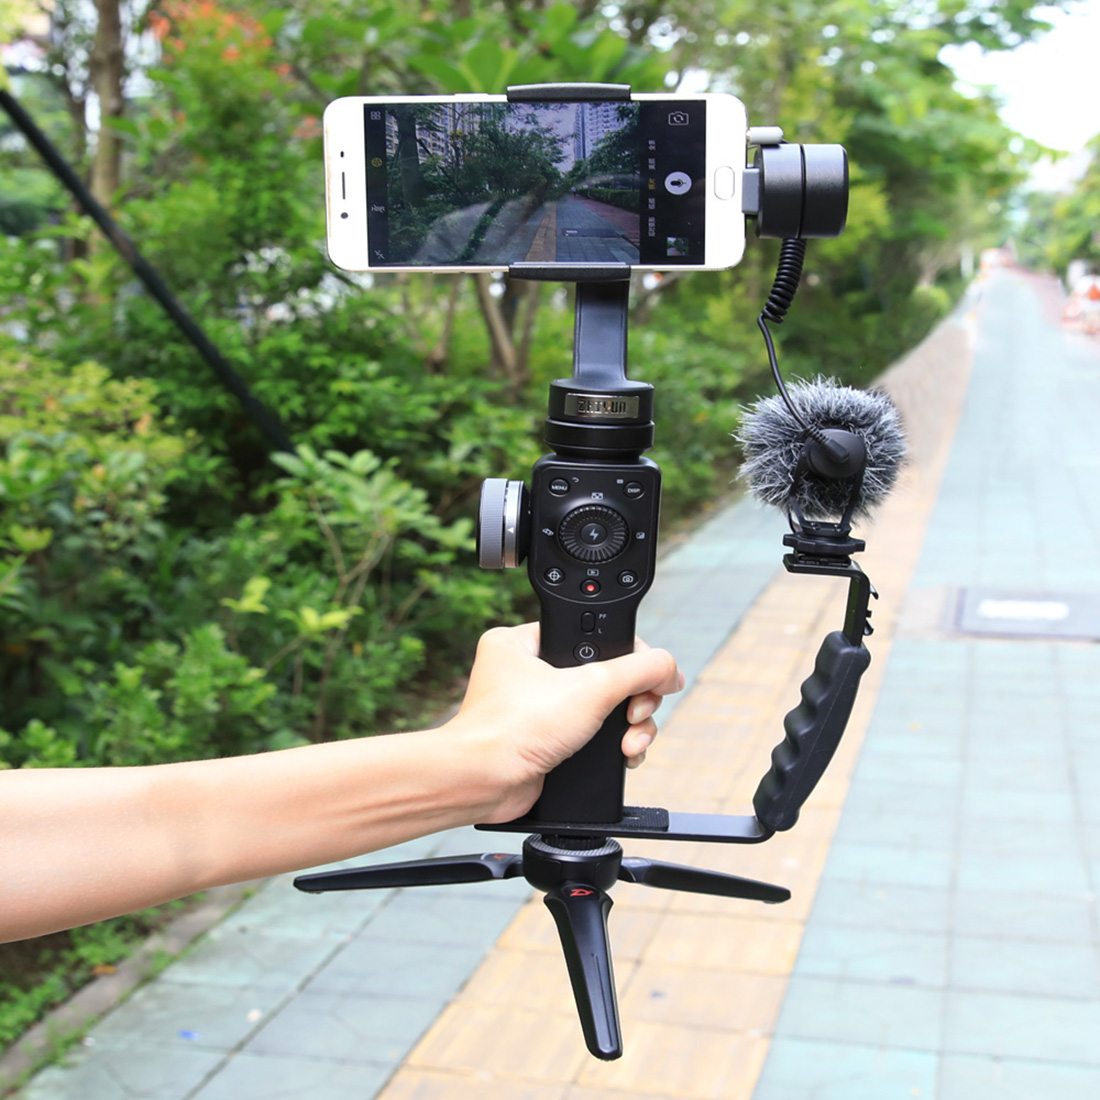 L Shape Stand Bracket Holder For DJI Osmo Mobile 2 Support For Microphone Photography